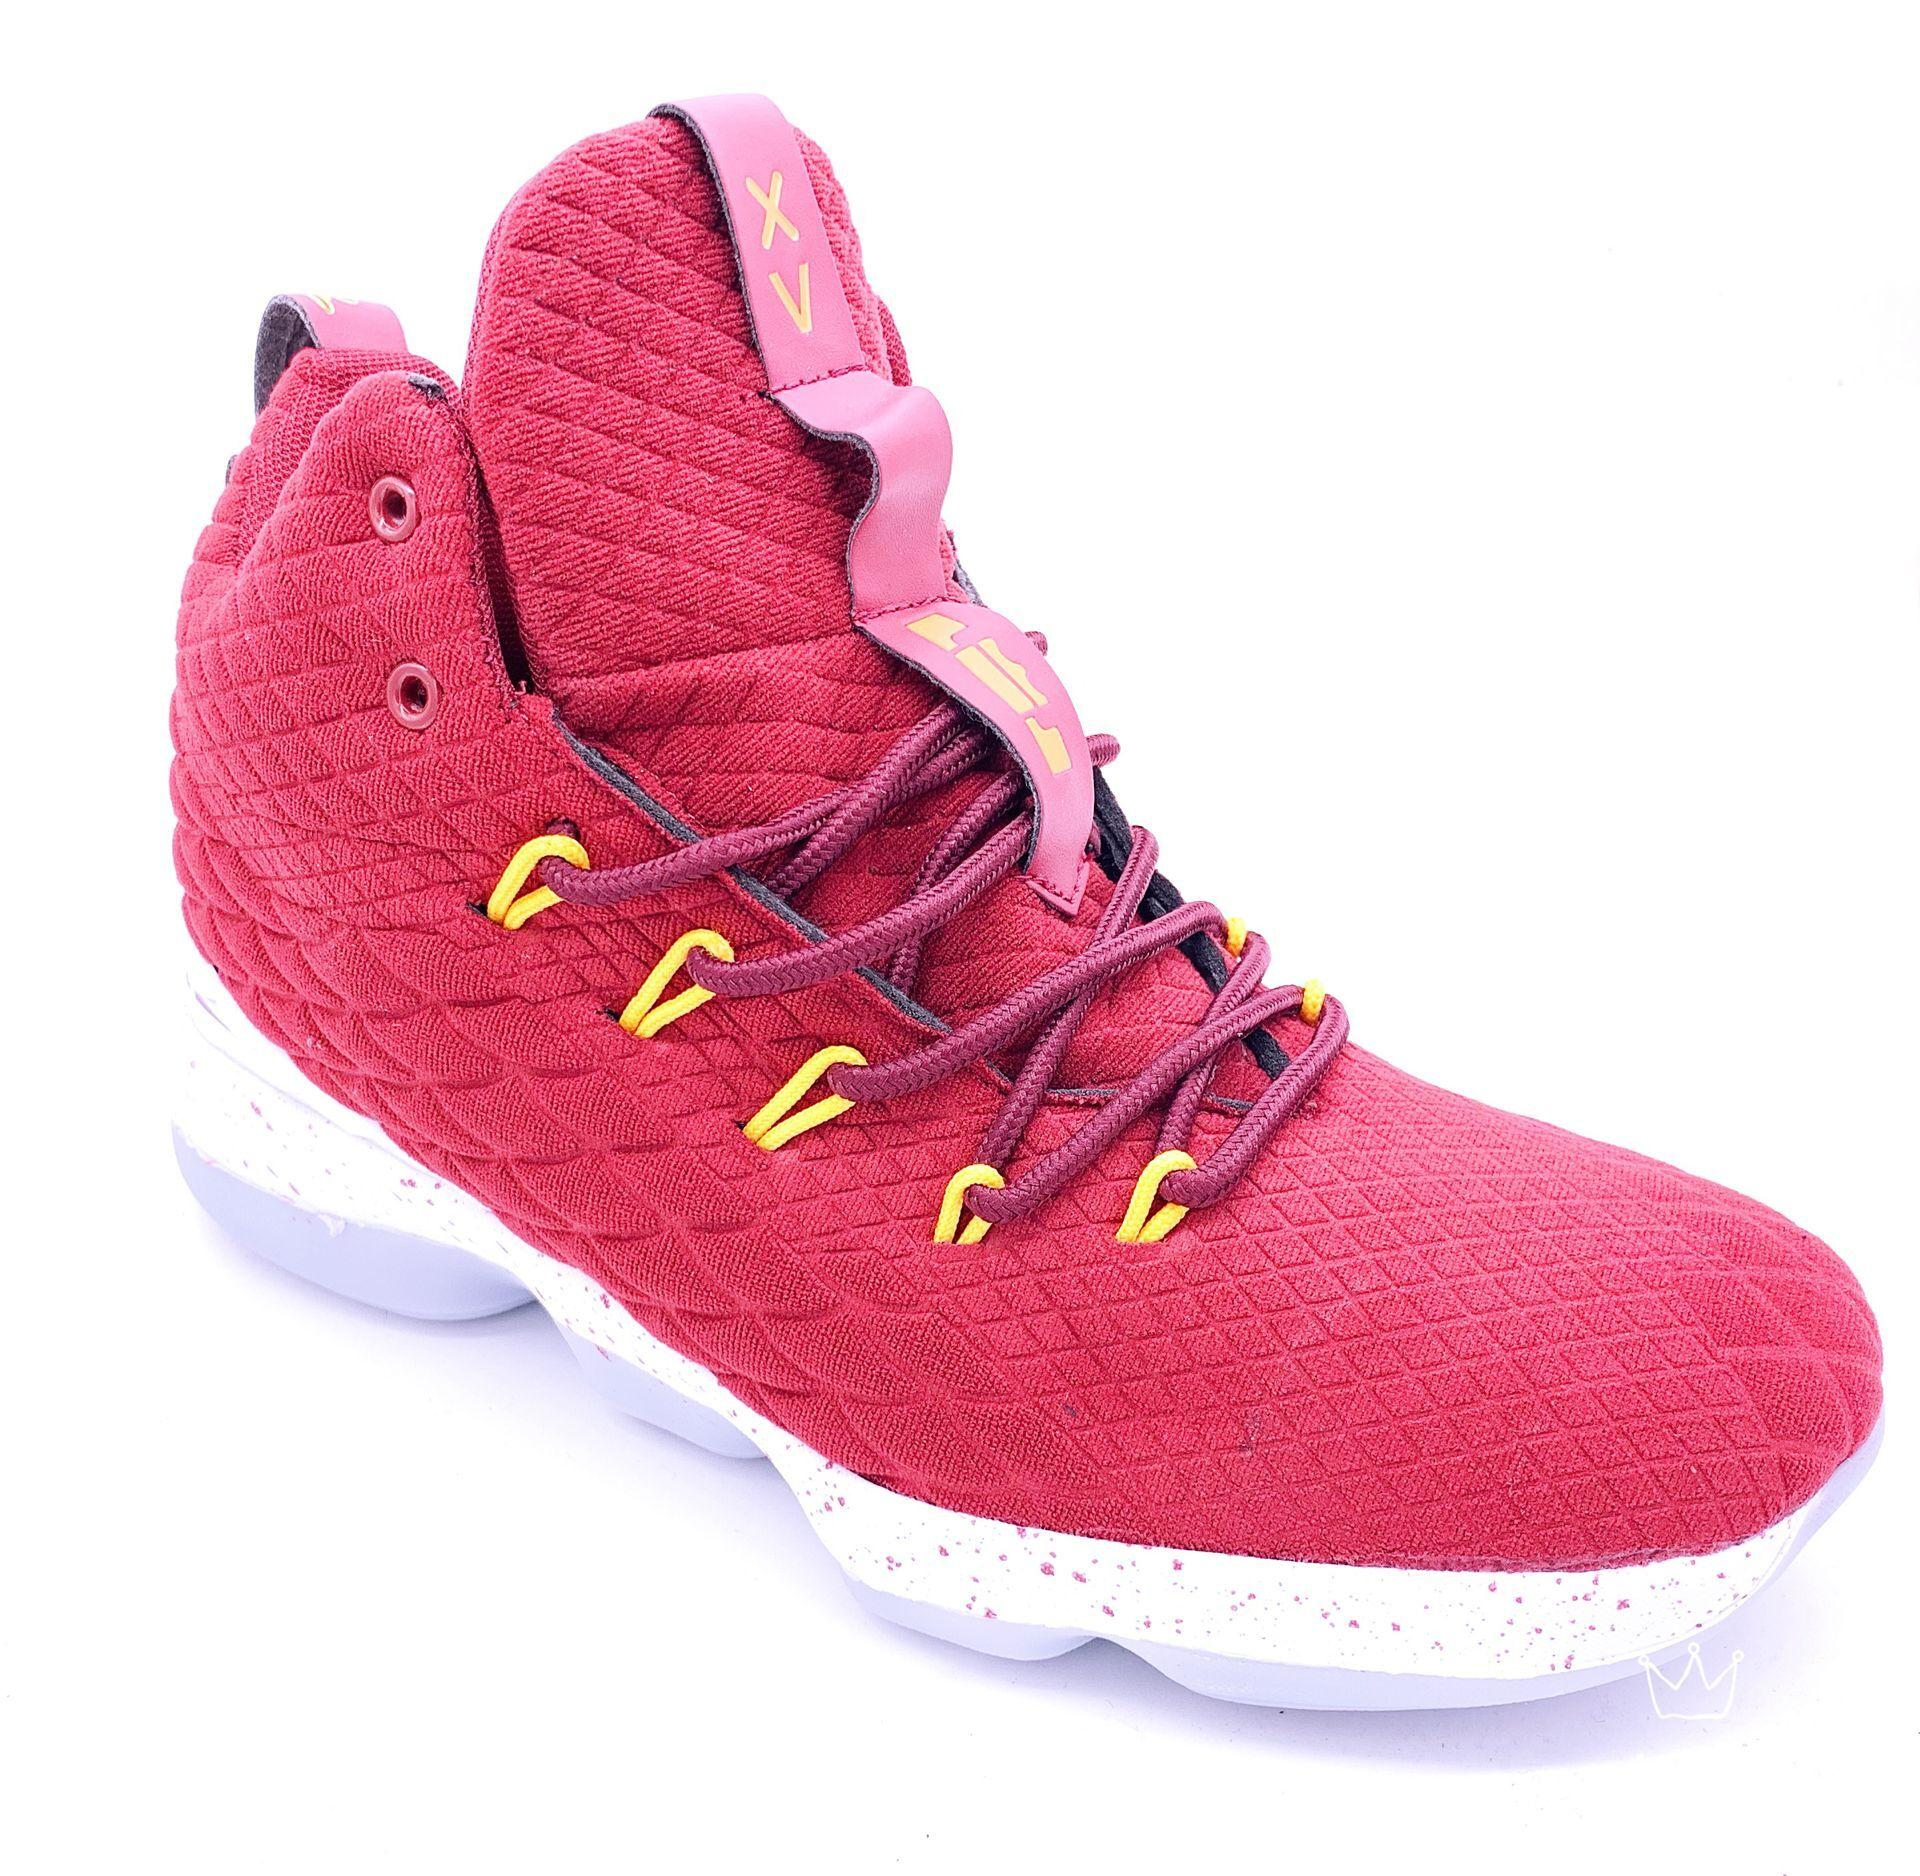 separation shoes 14830 77617 Lebron 15 XV Mens Sizes Basketball Shoes